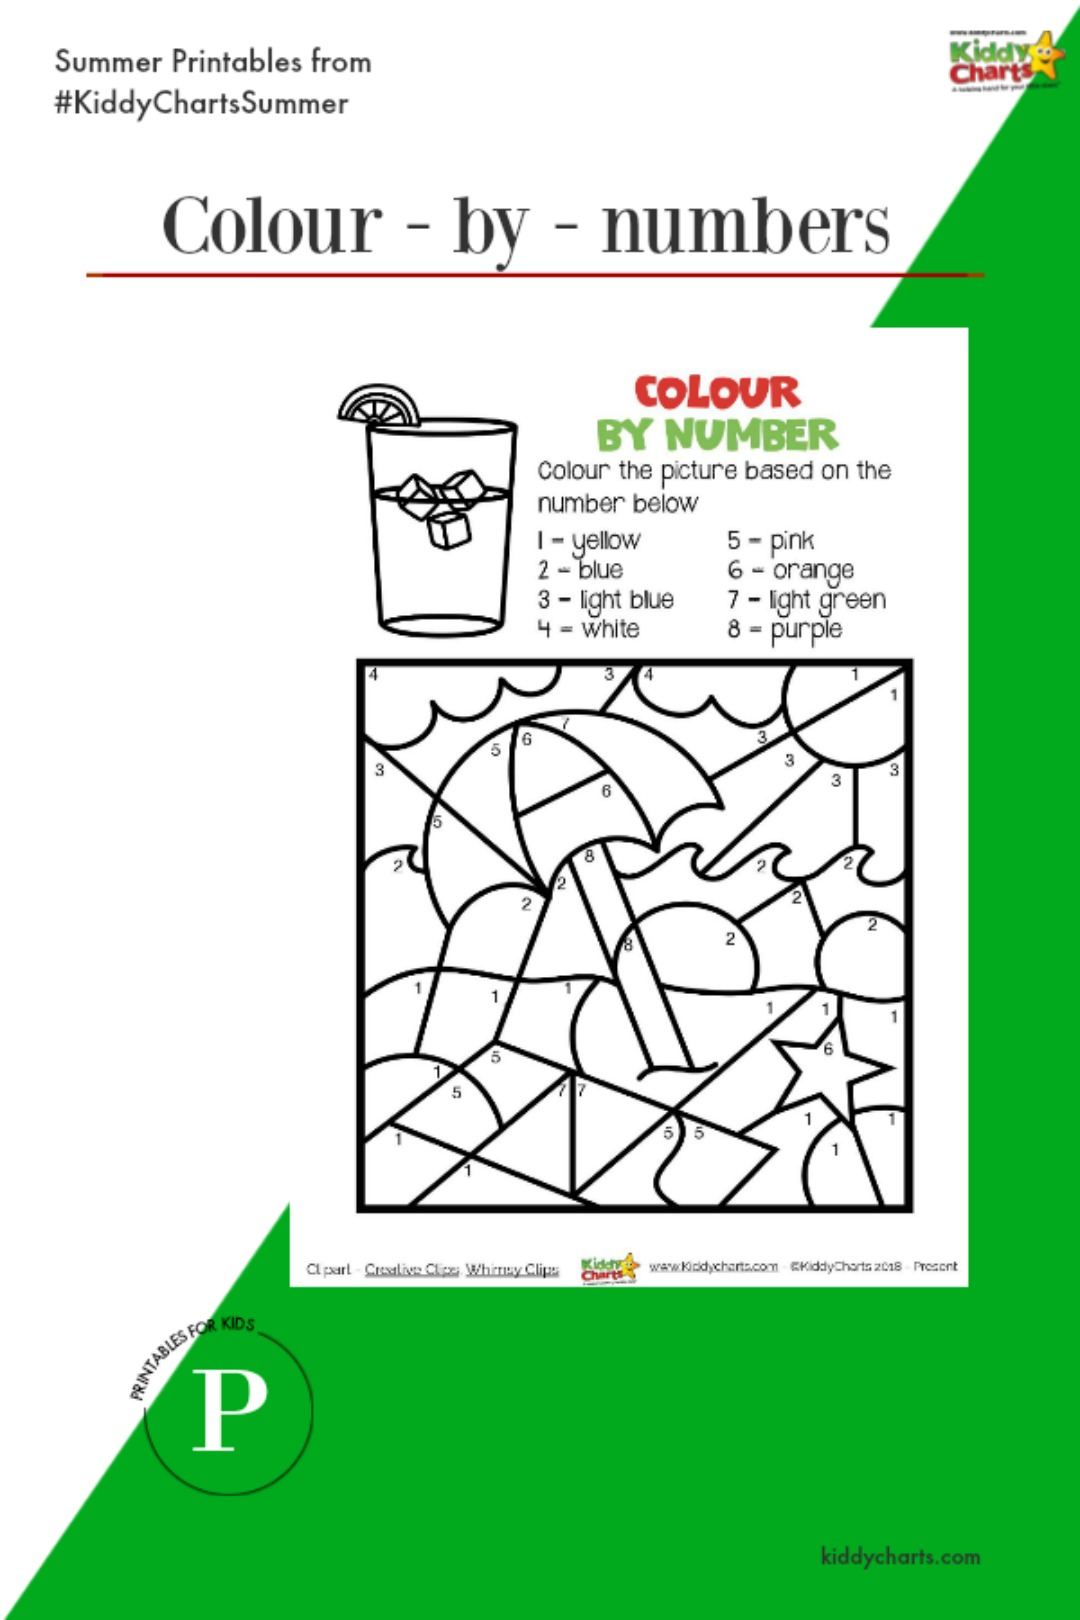 Summer colour by numbers in day one of our countdown. See more on the site! #kids #printables #summer #colouring